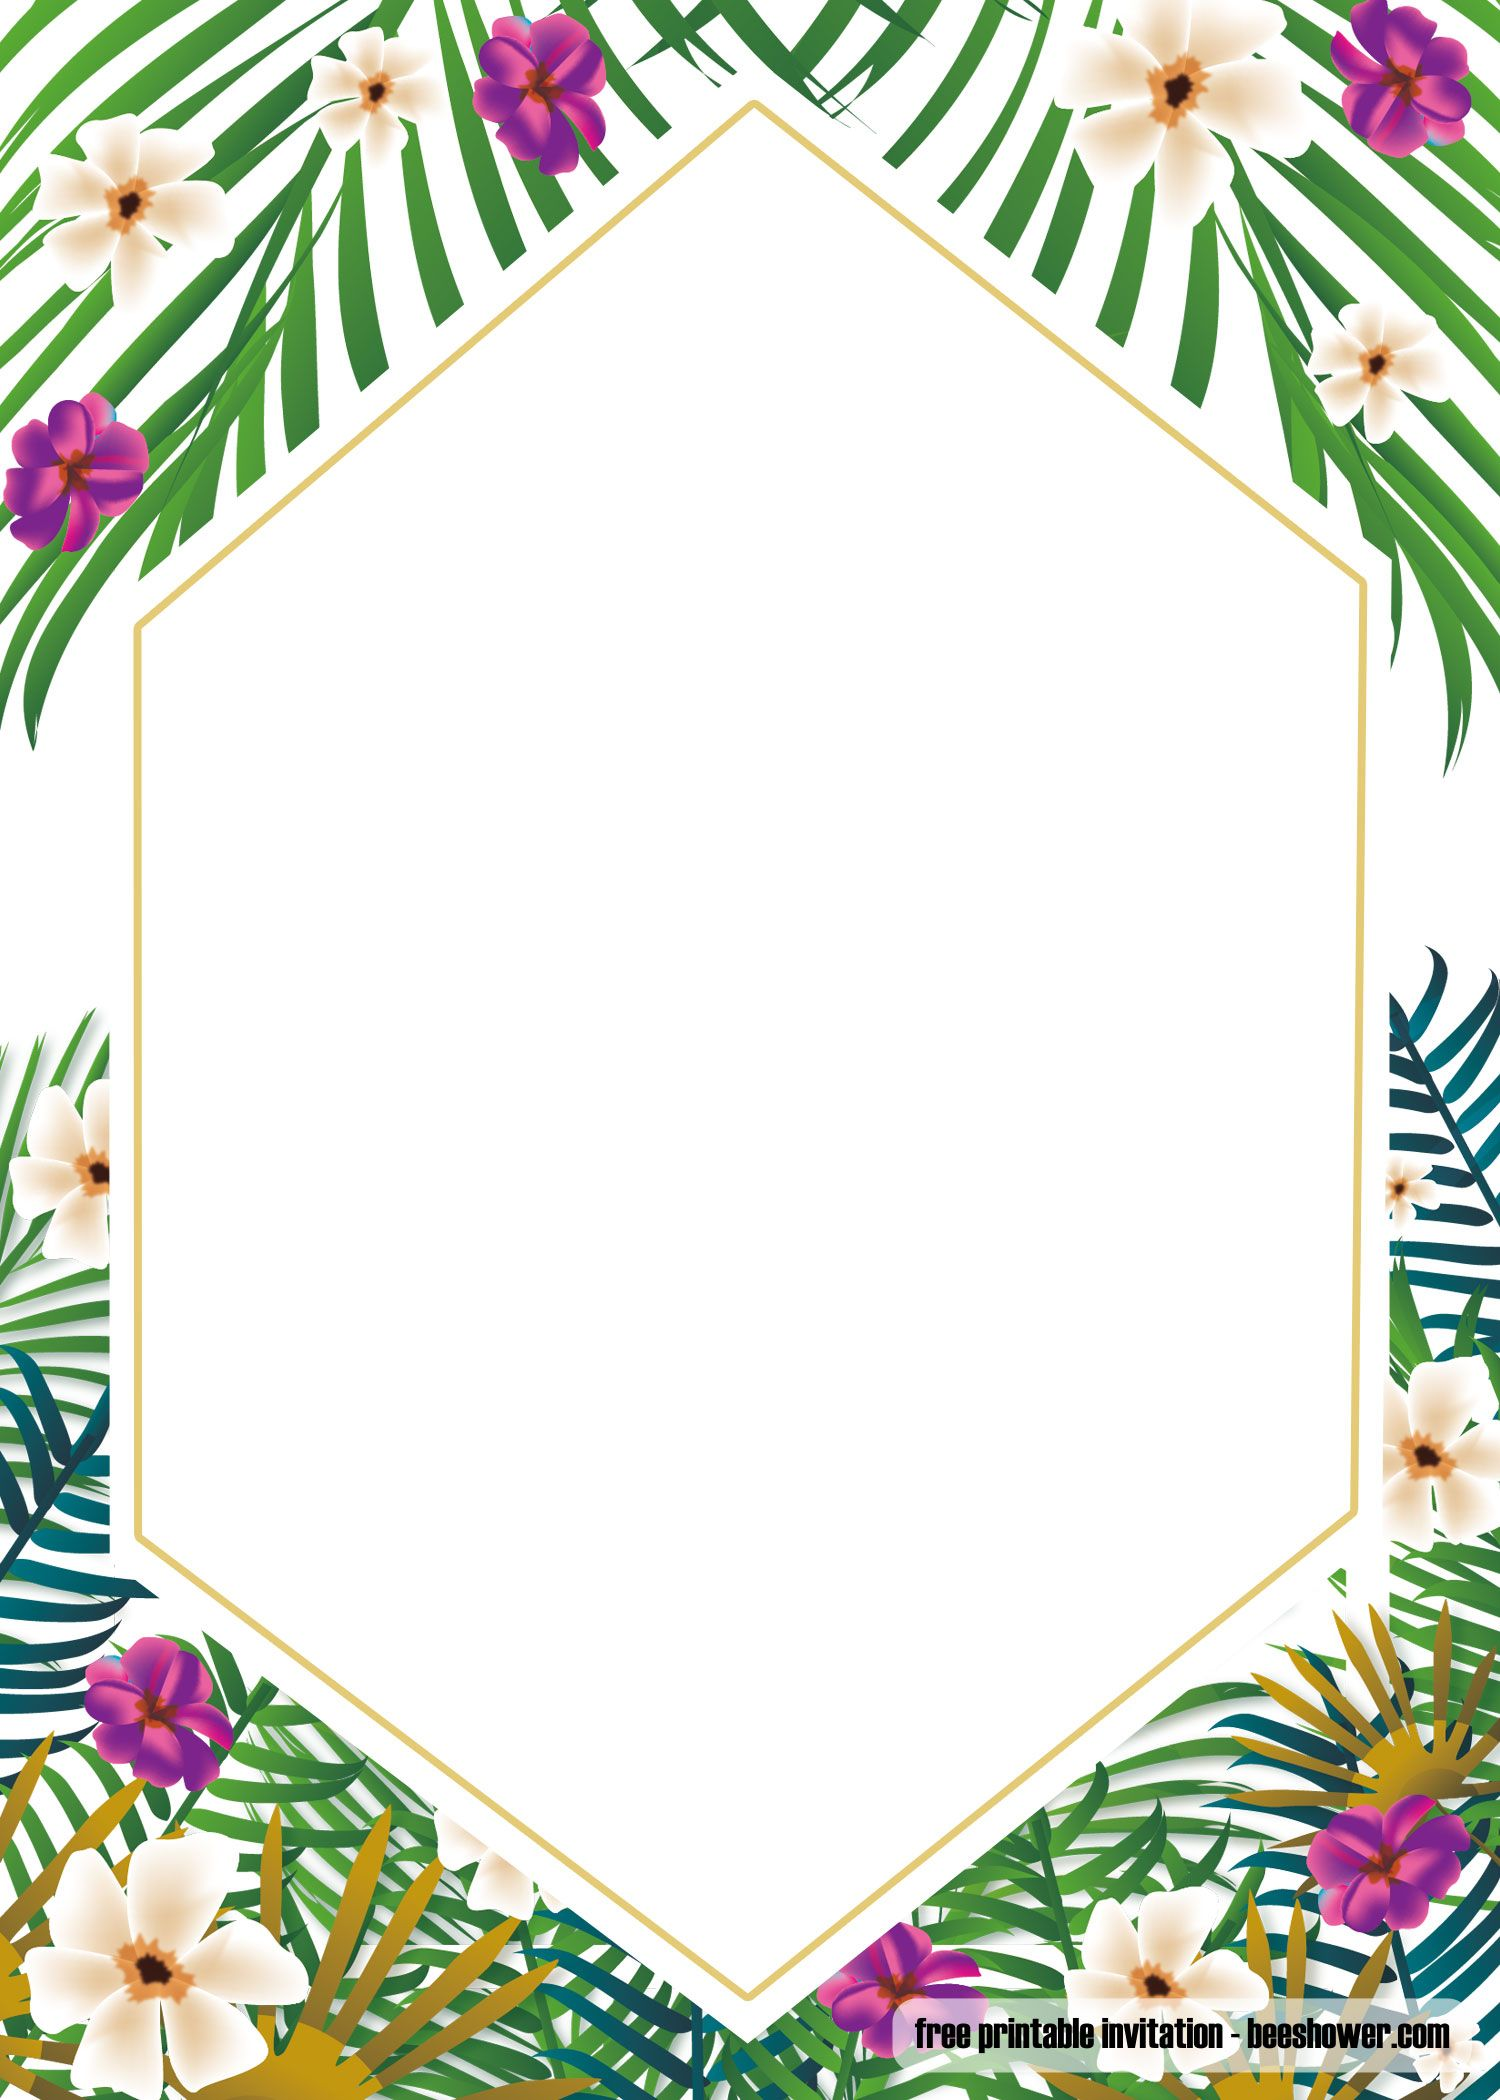 Awesome Free Printable Tropical Baby Shower Invitation Template ... image free download